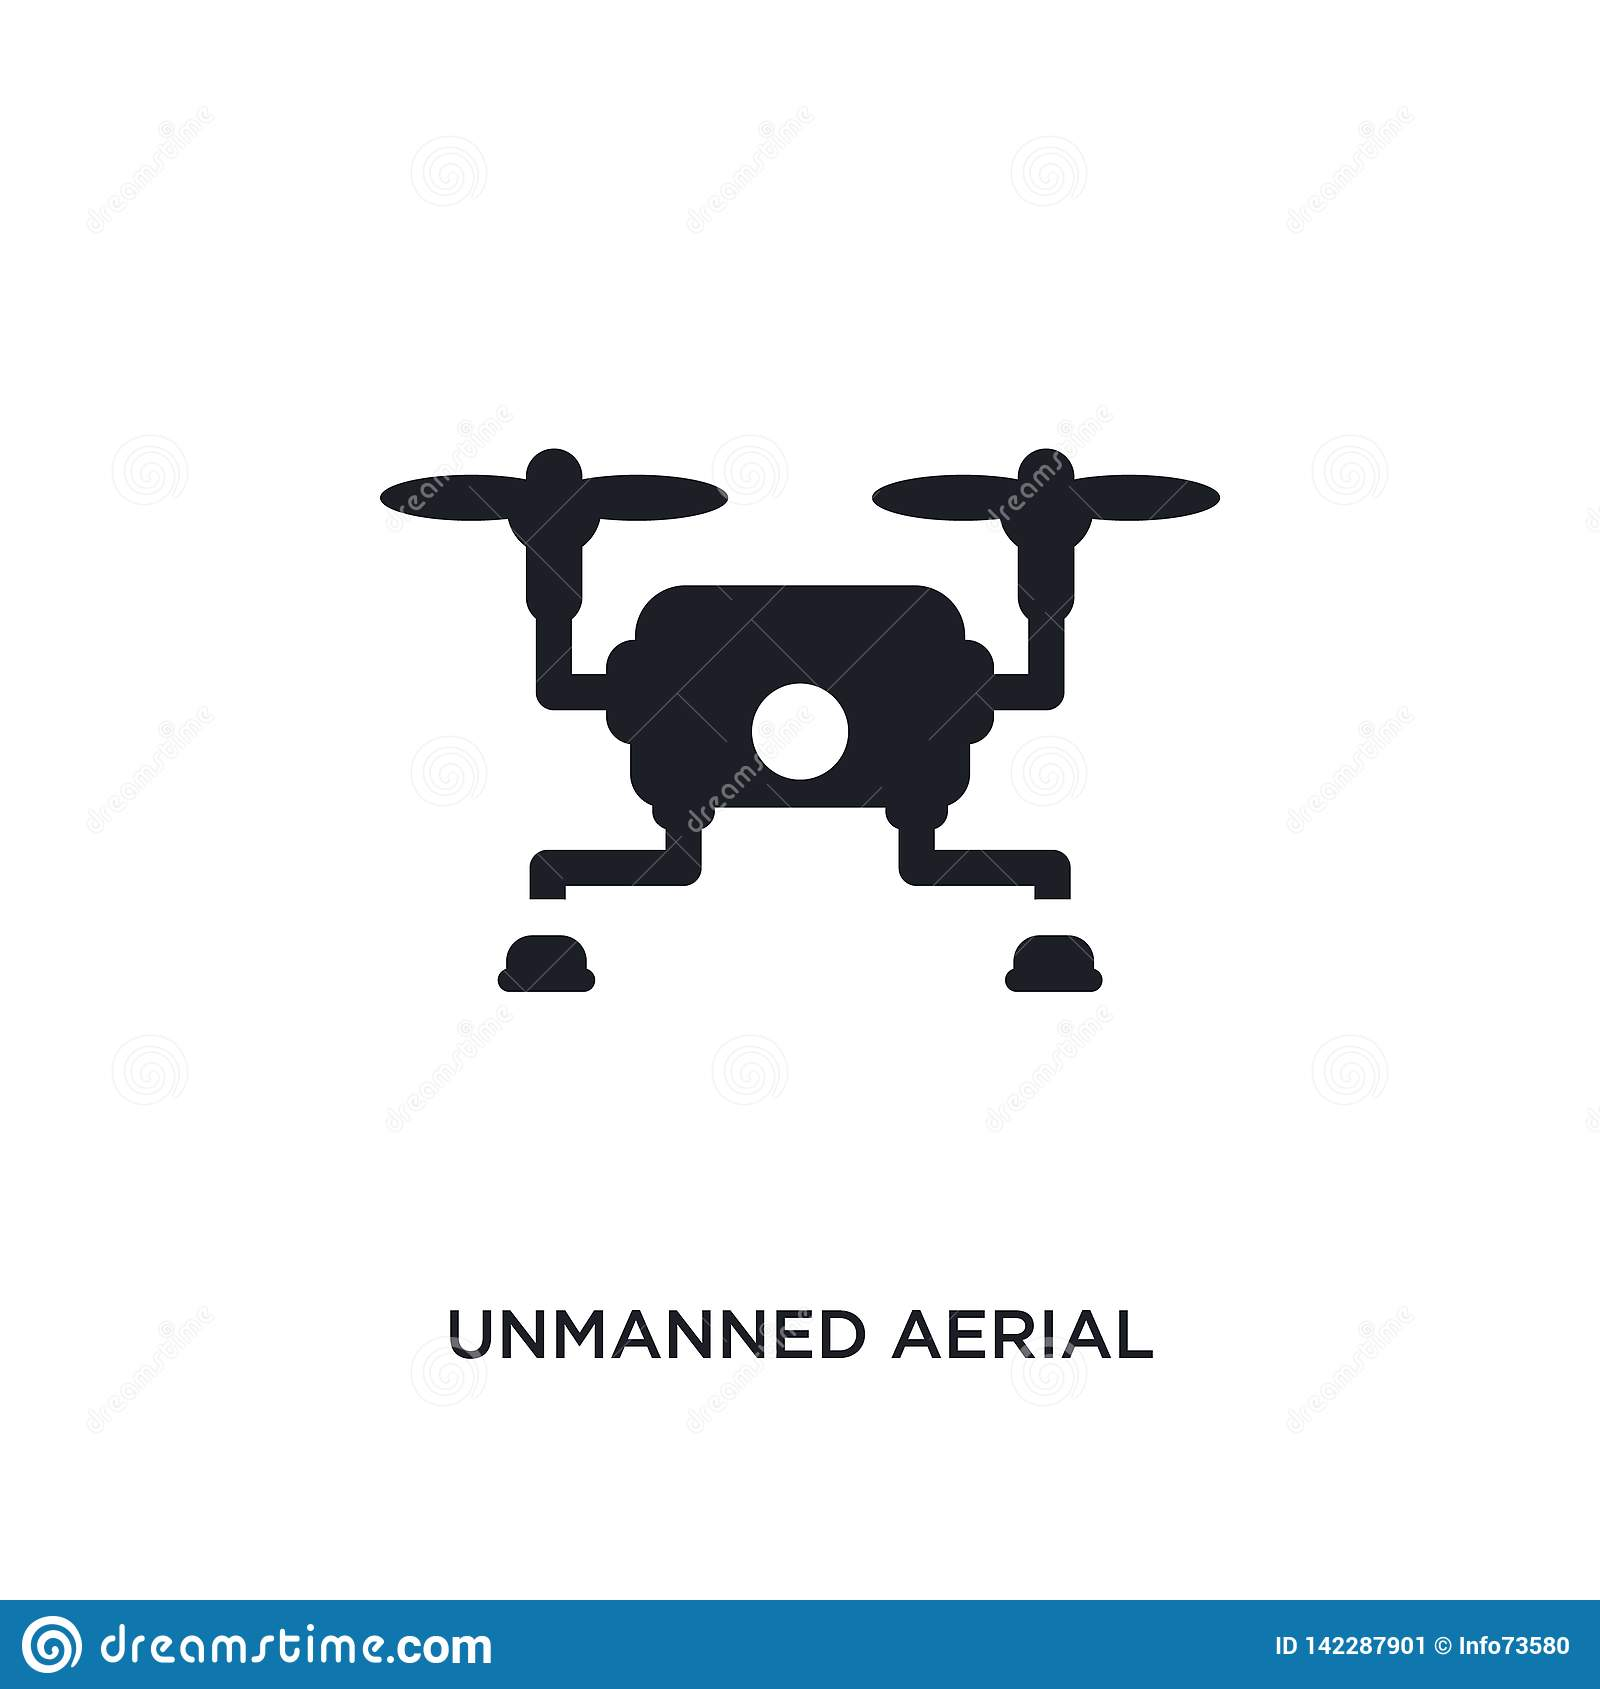 unmanned aerial vehicle isolated icon. simple element illustration from artificial intellegence concept icons. unmanned aerial